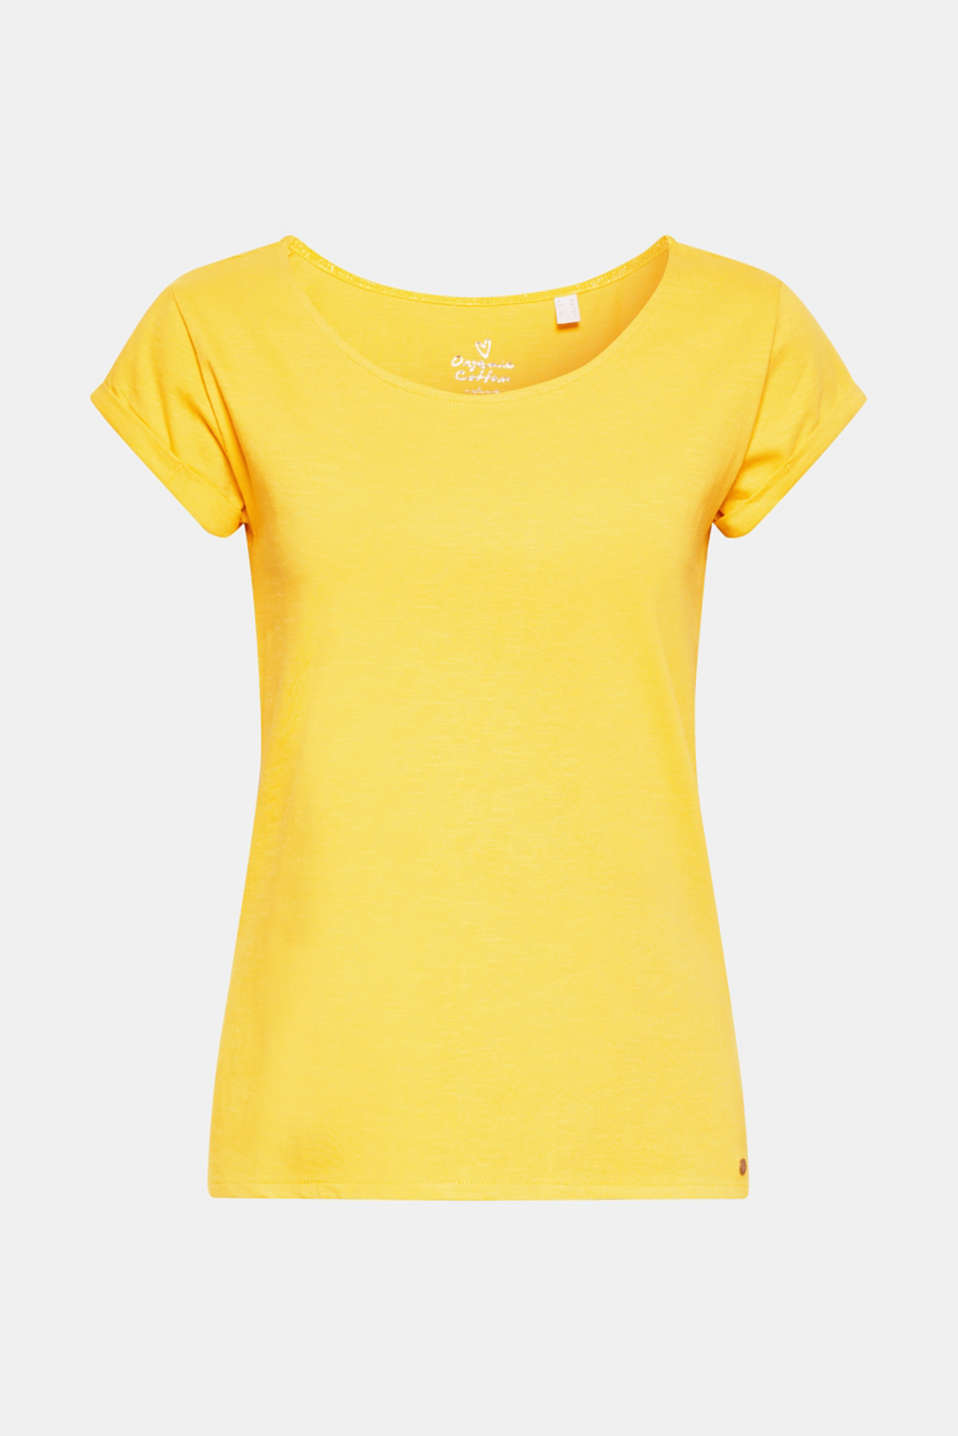 Esprit - T-shirt with organic cotton, 100% cotton